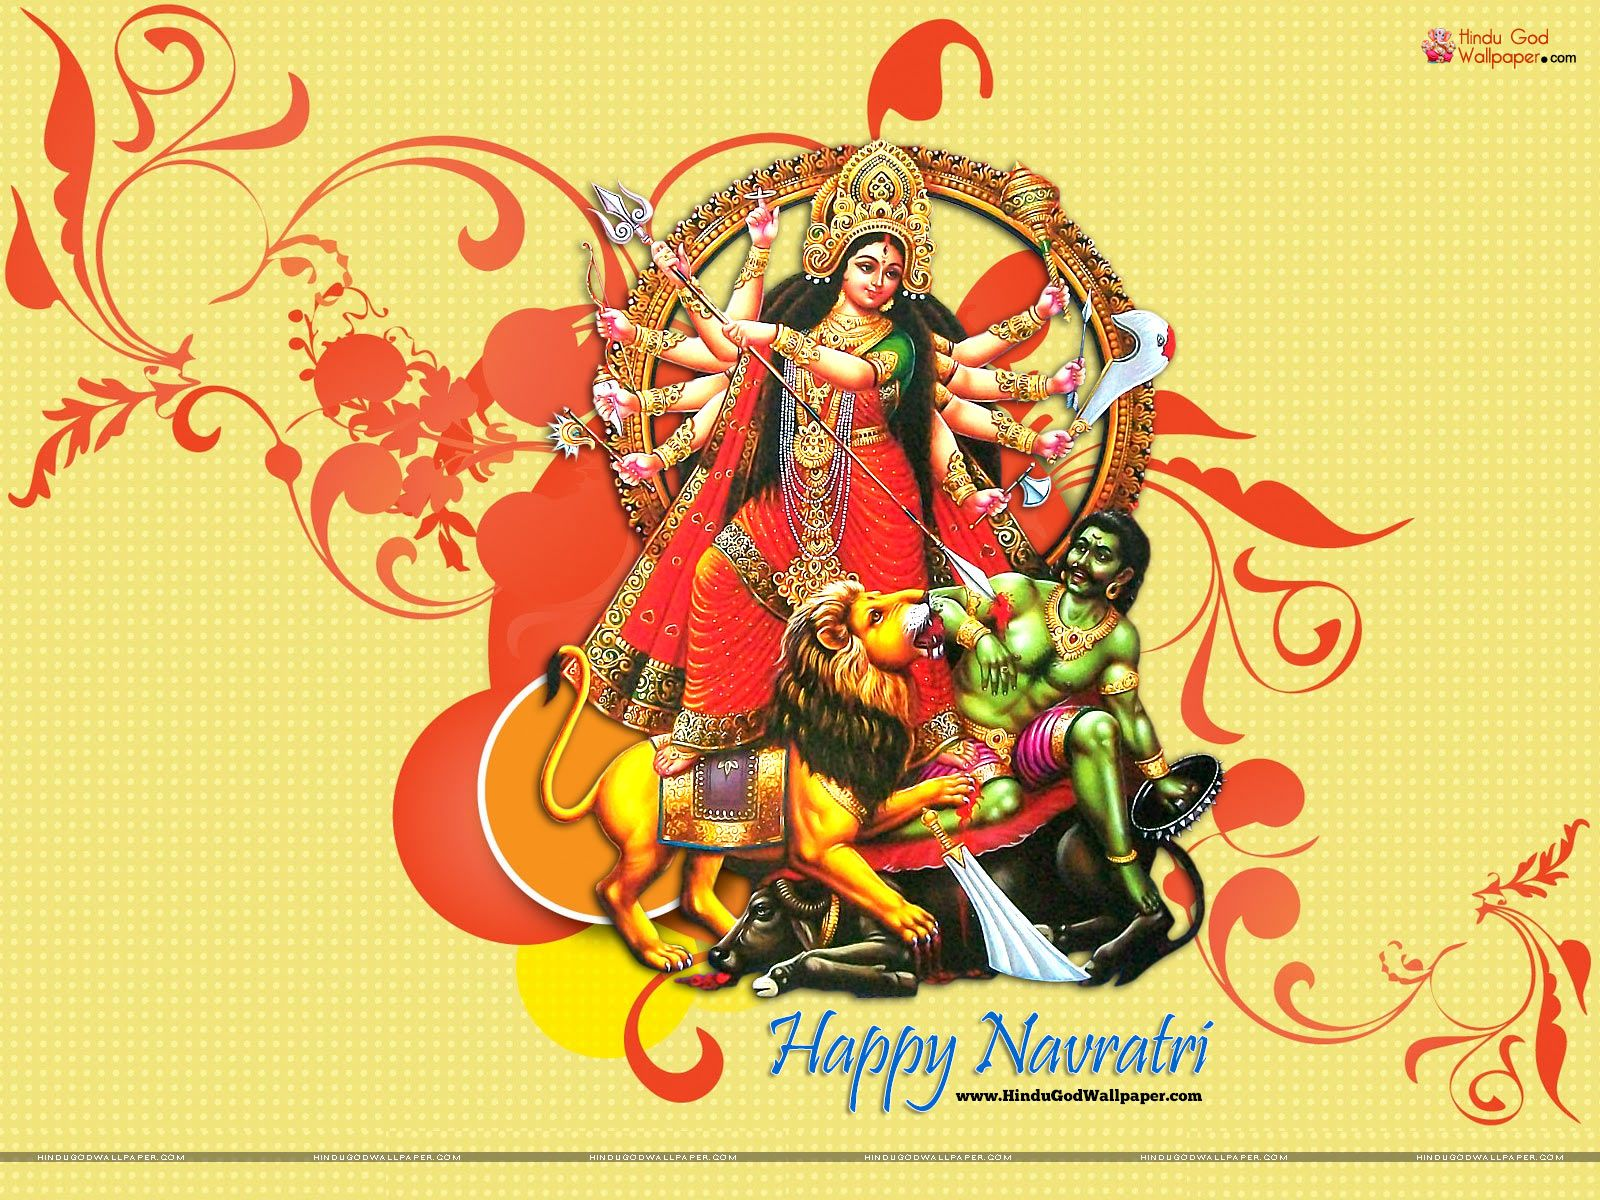 Navratri greetings wallpaper free download navratri wallpapers messages navratri greetings wallpaper free download kristyandbryce Choice Image